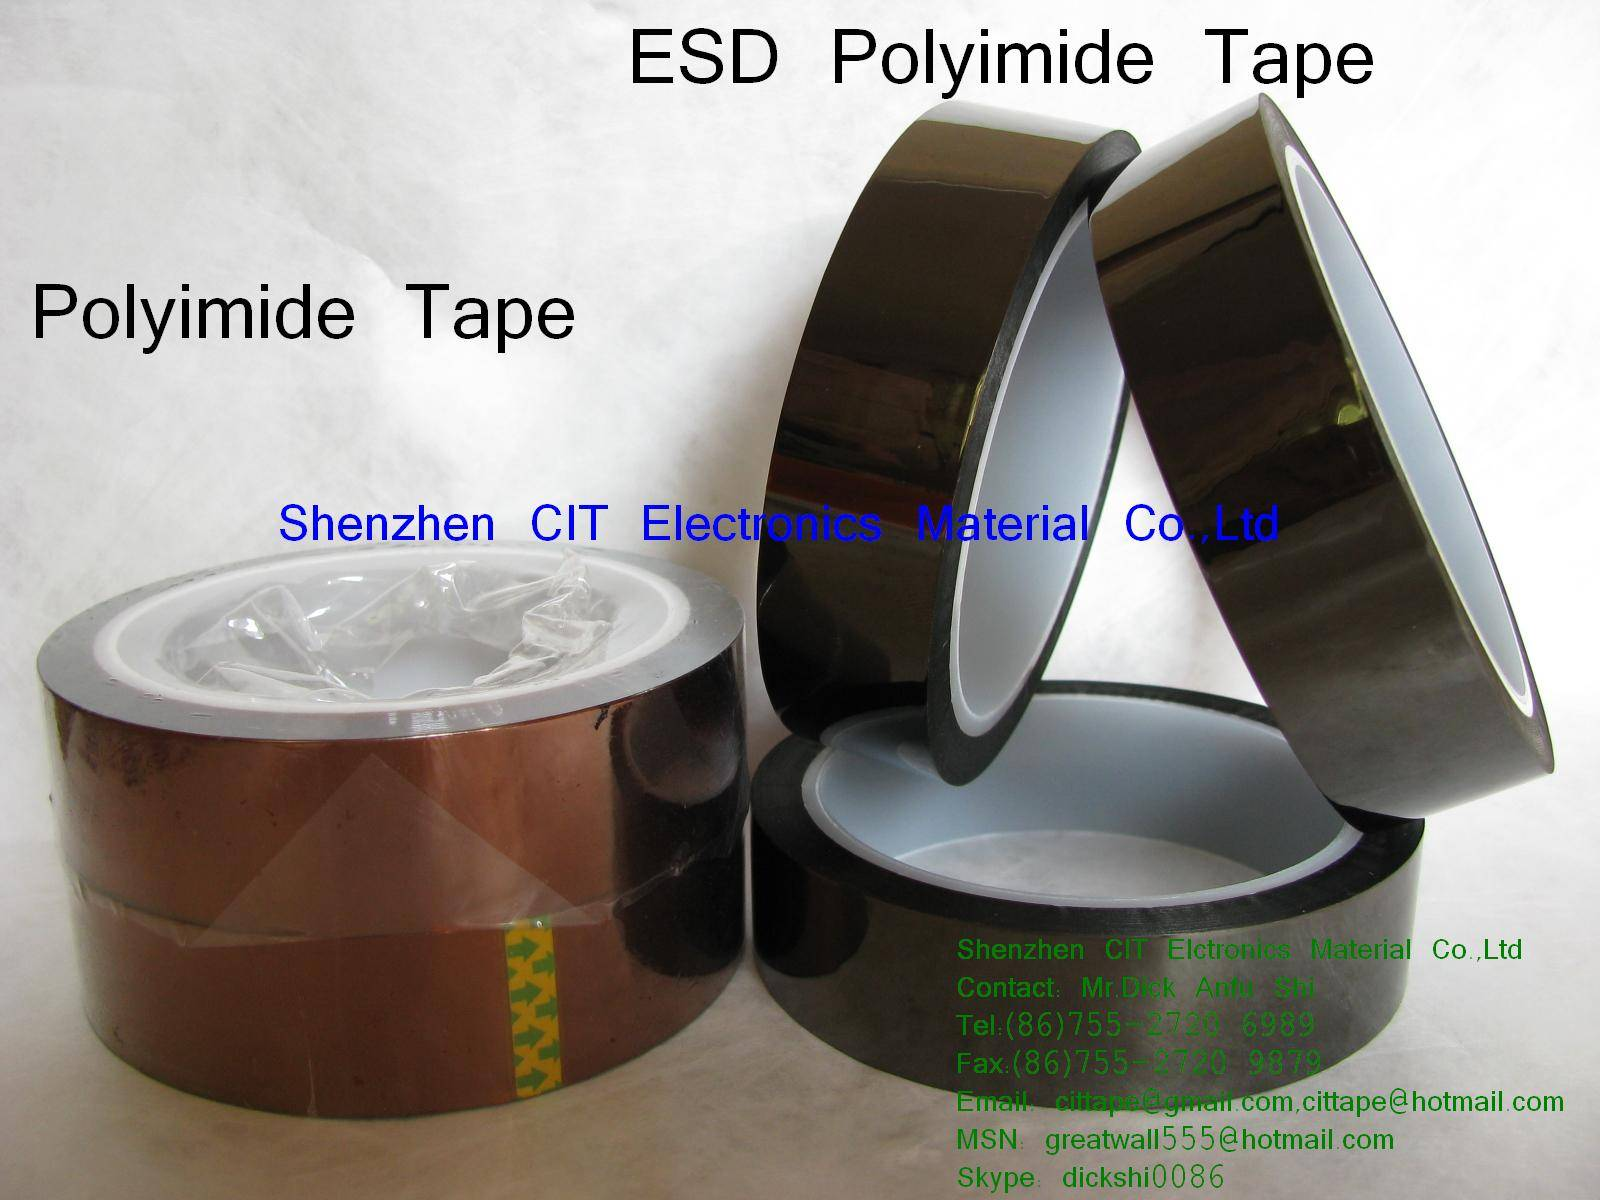 ESD Polyimide tape